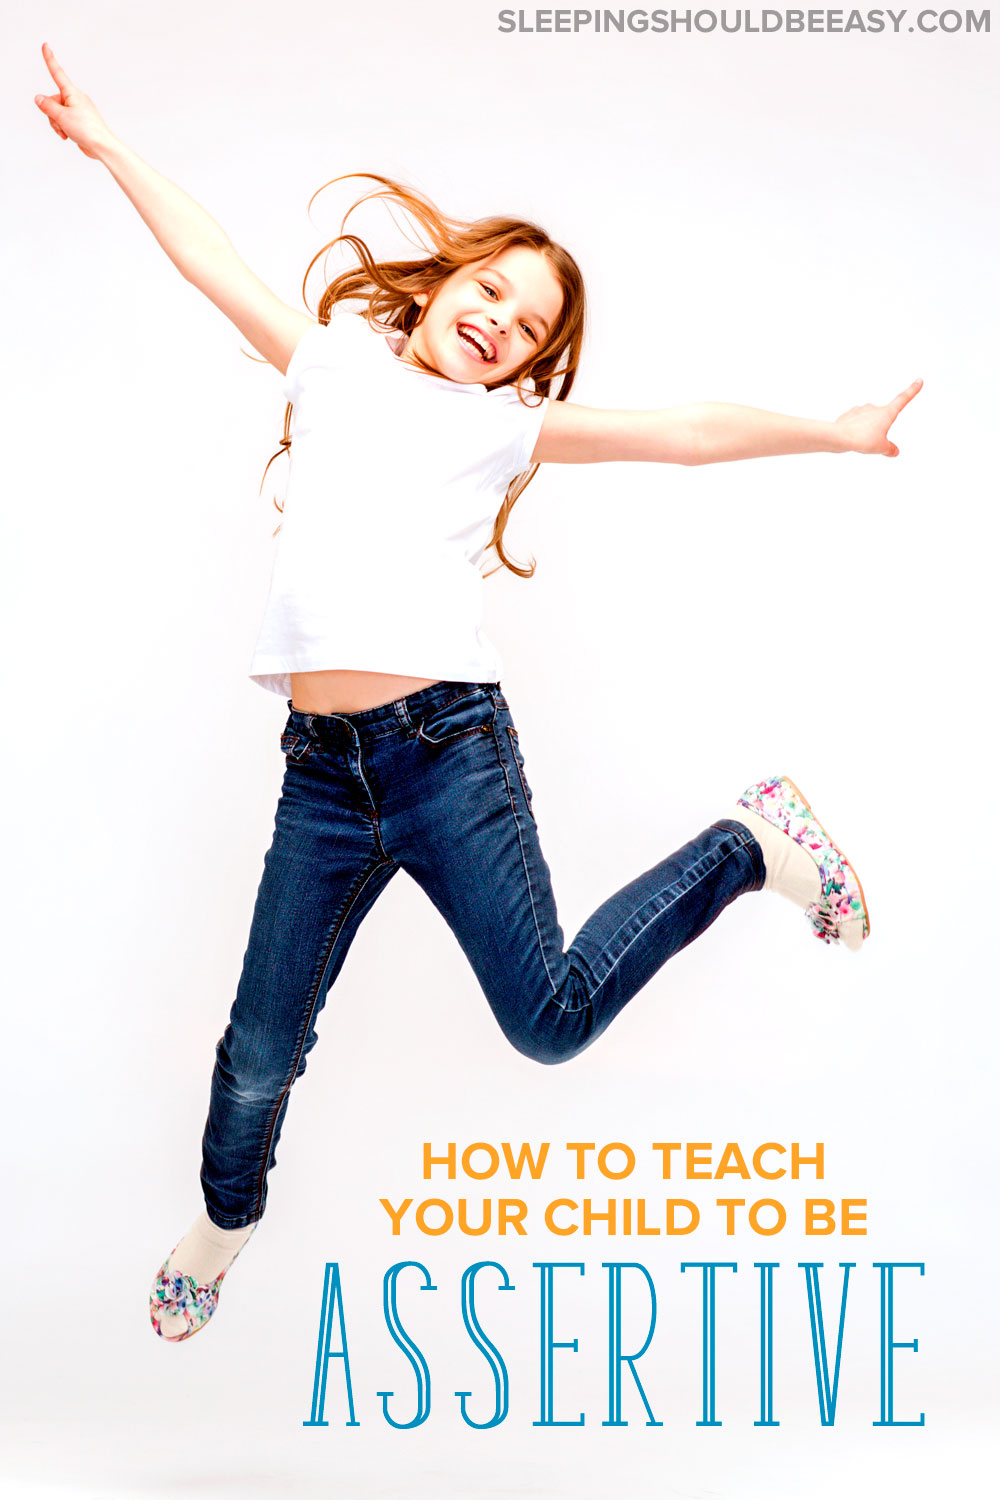 Kids should learn how to stand up for themselves, kindly and determinedly. Here are tips on how to teach your child to be assertive in social settings.